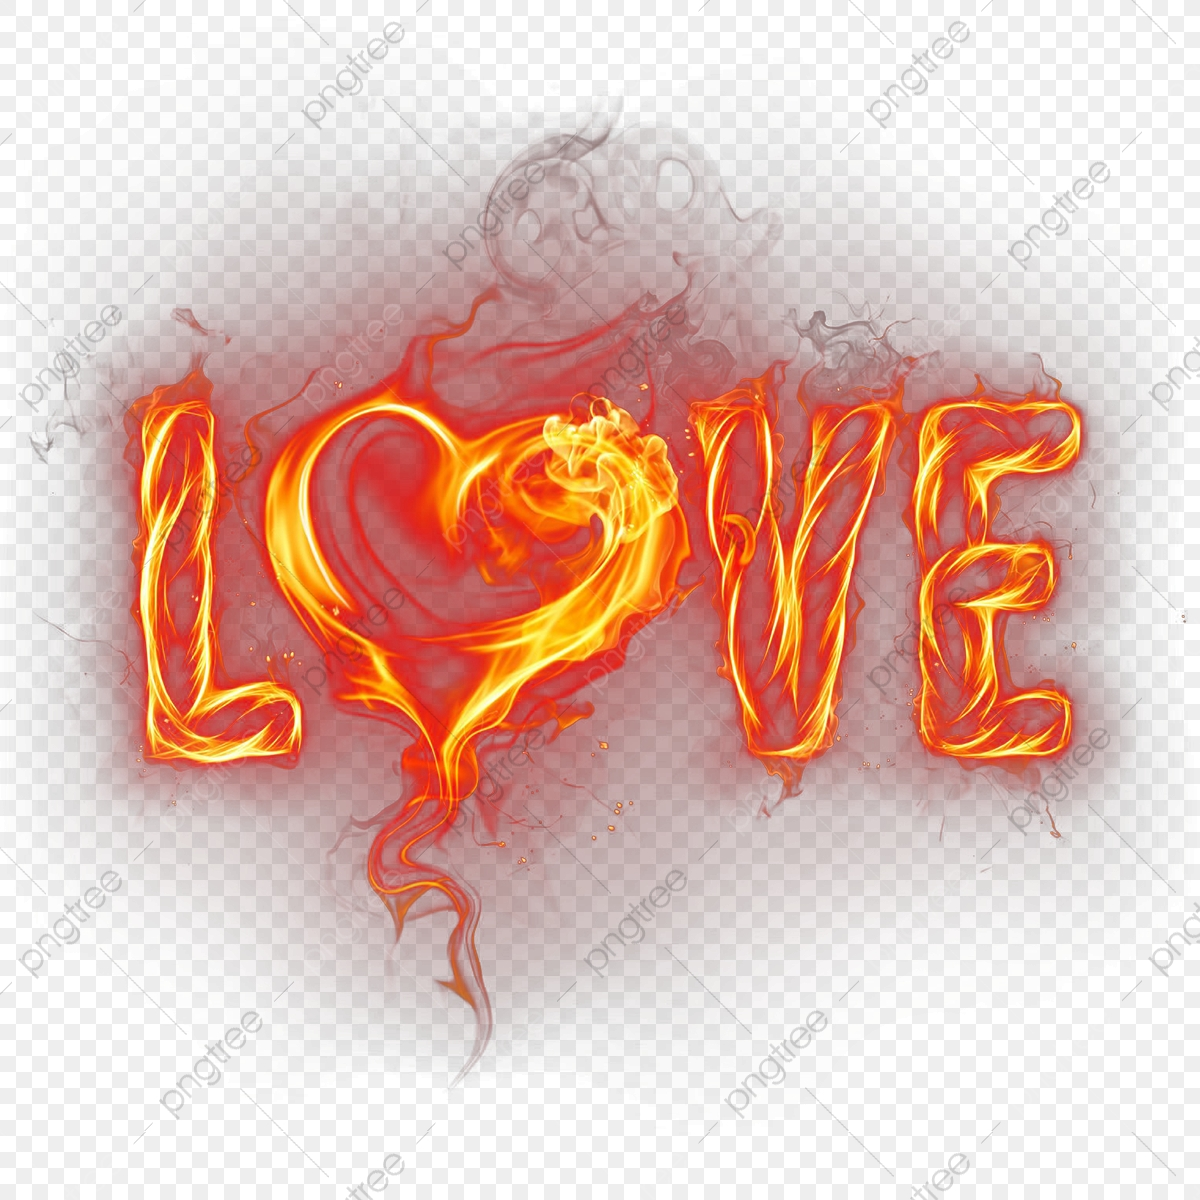 Fire clipart love. Heart png transparent